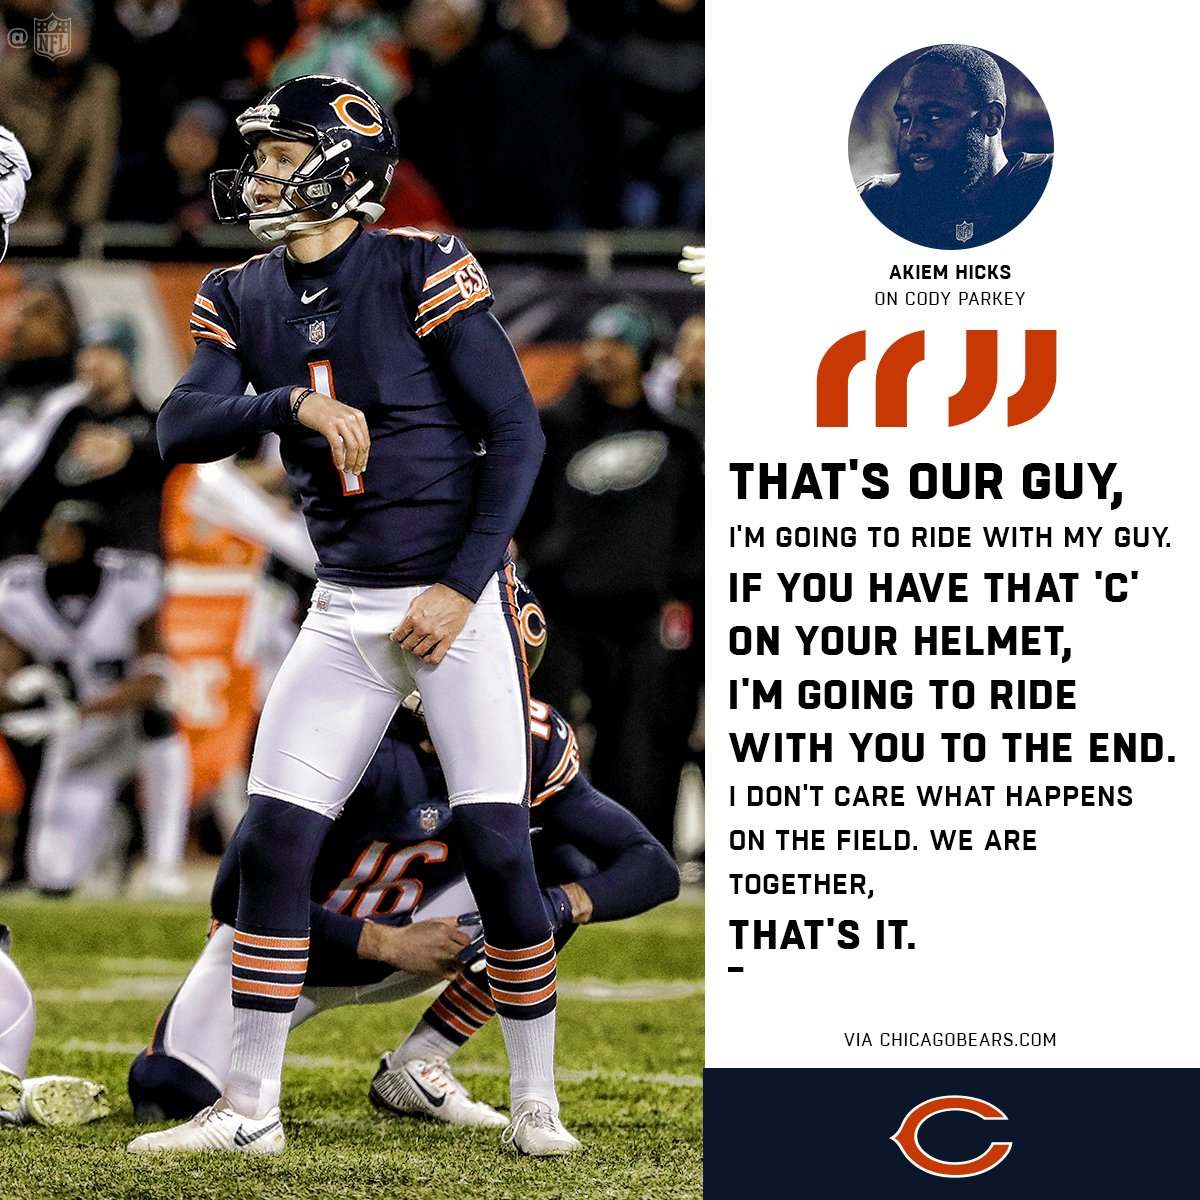 In good times and bad, teammates stick together. ��⬇️  #DaBears https://t.co/USg5Hx352a